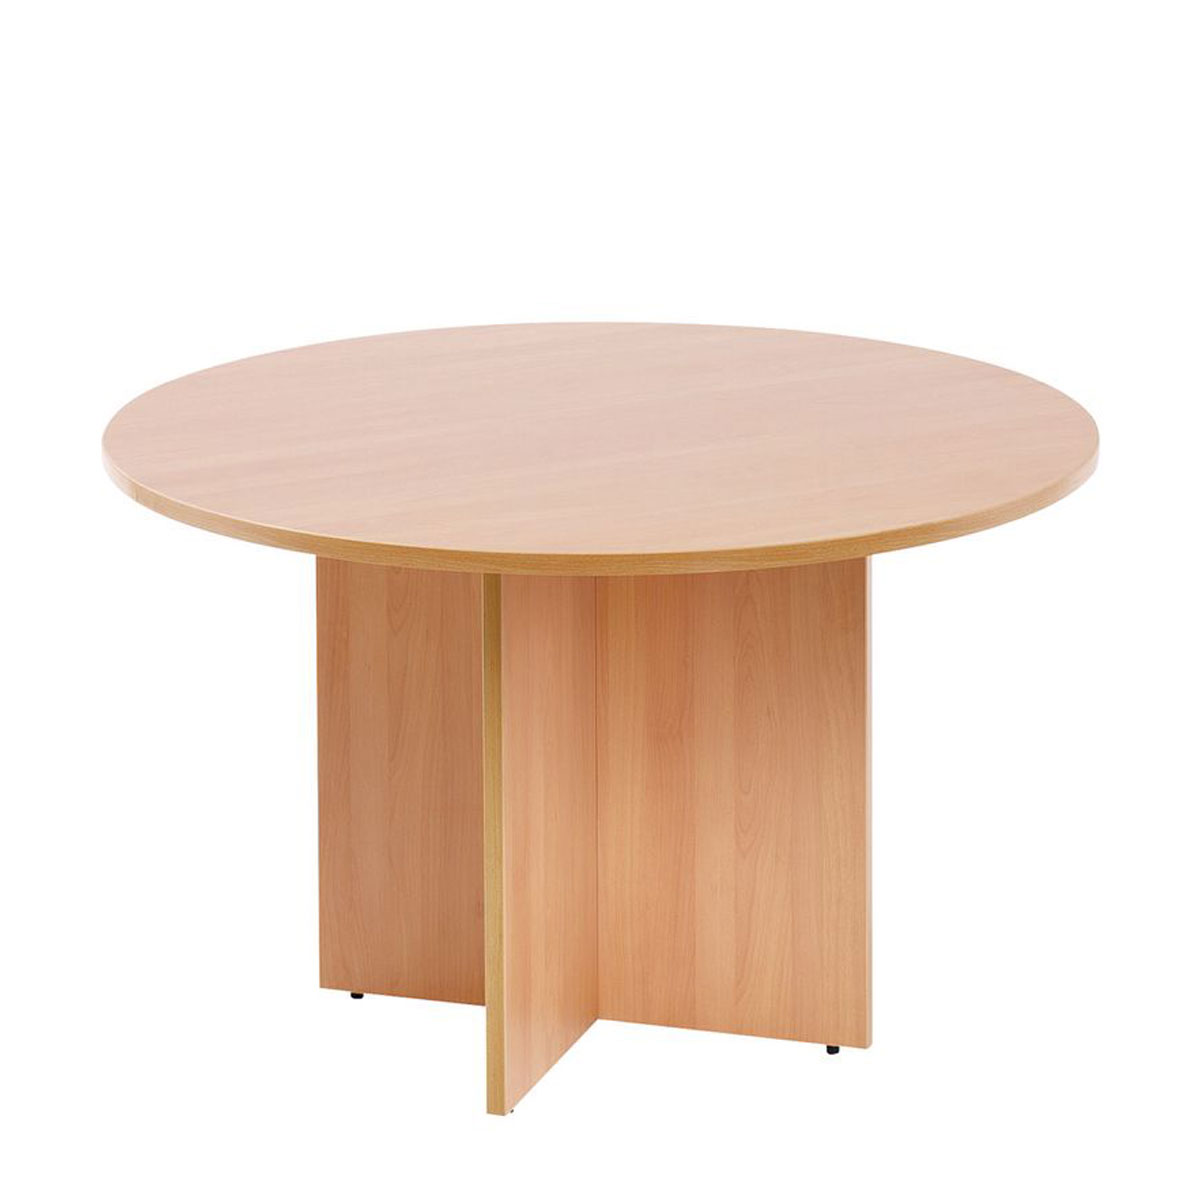 meeting-table-wooden-round-shape.jpg